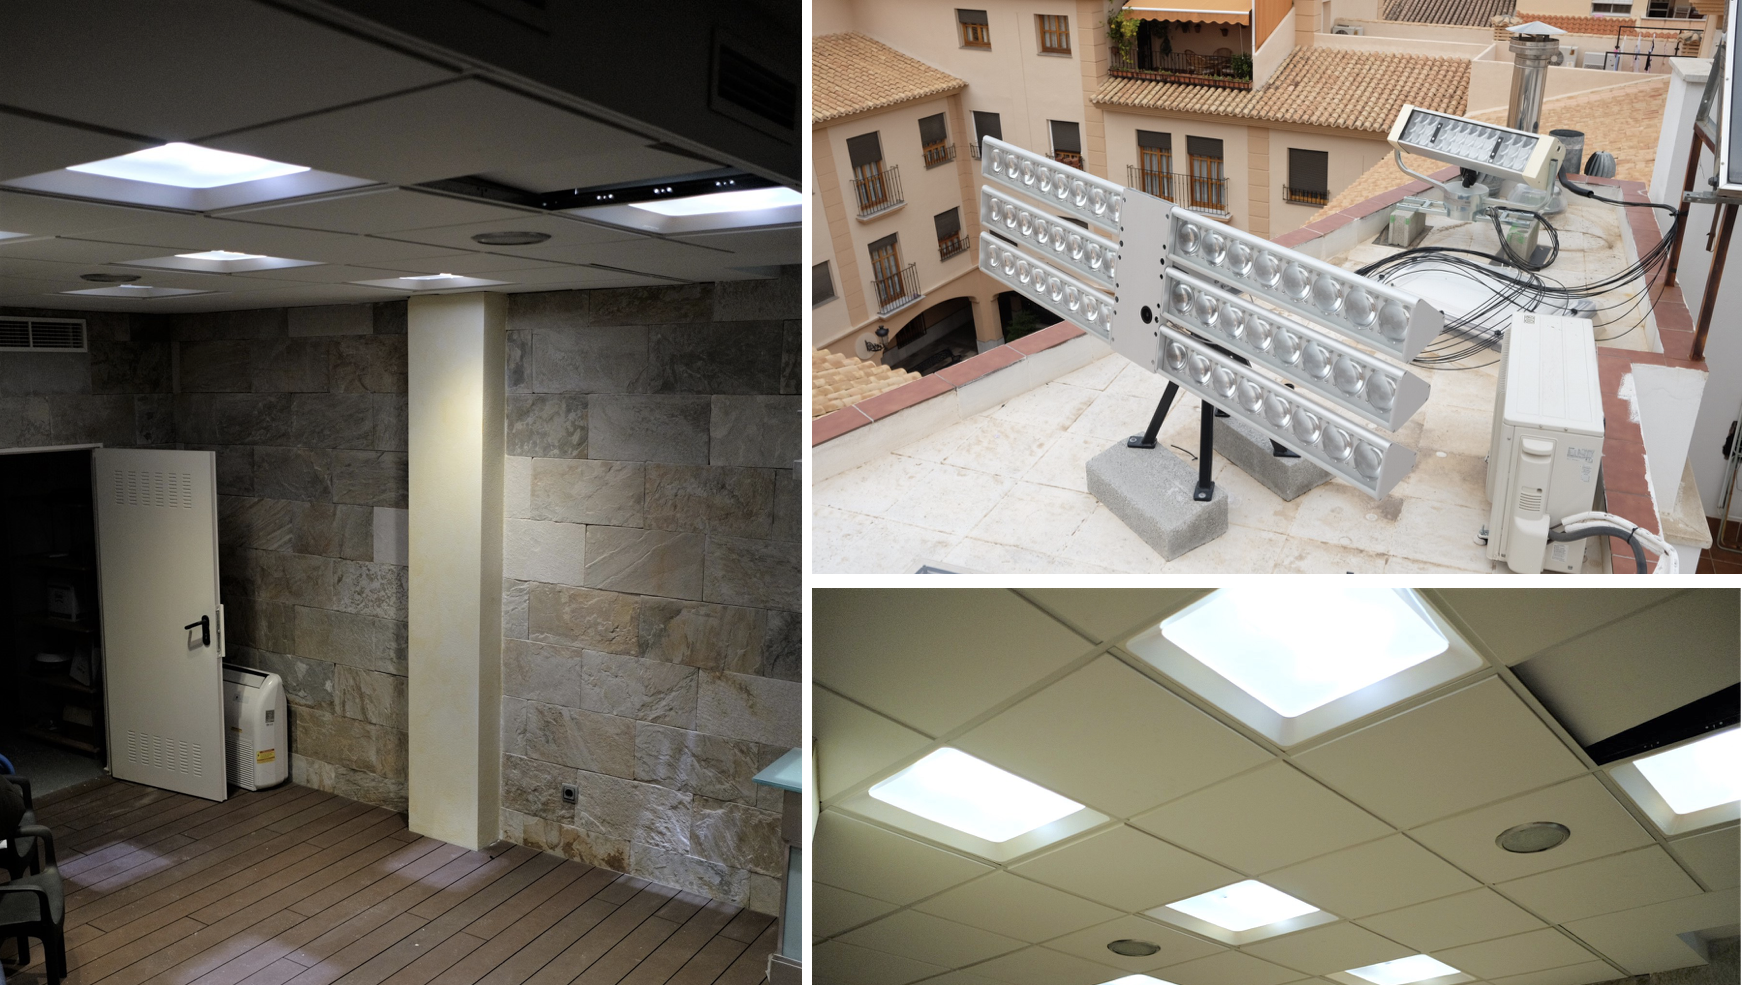 Installation Of Parans System In Spain